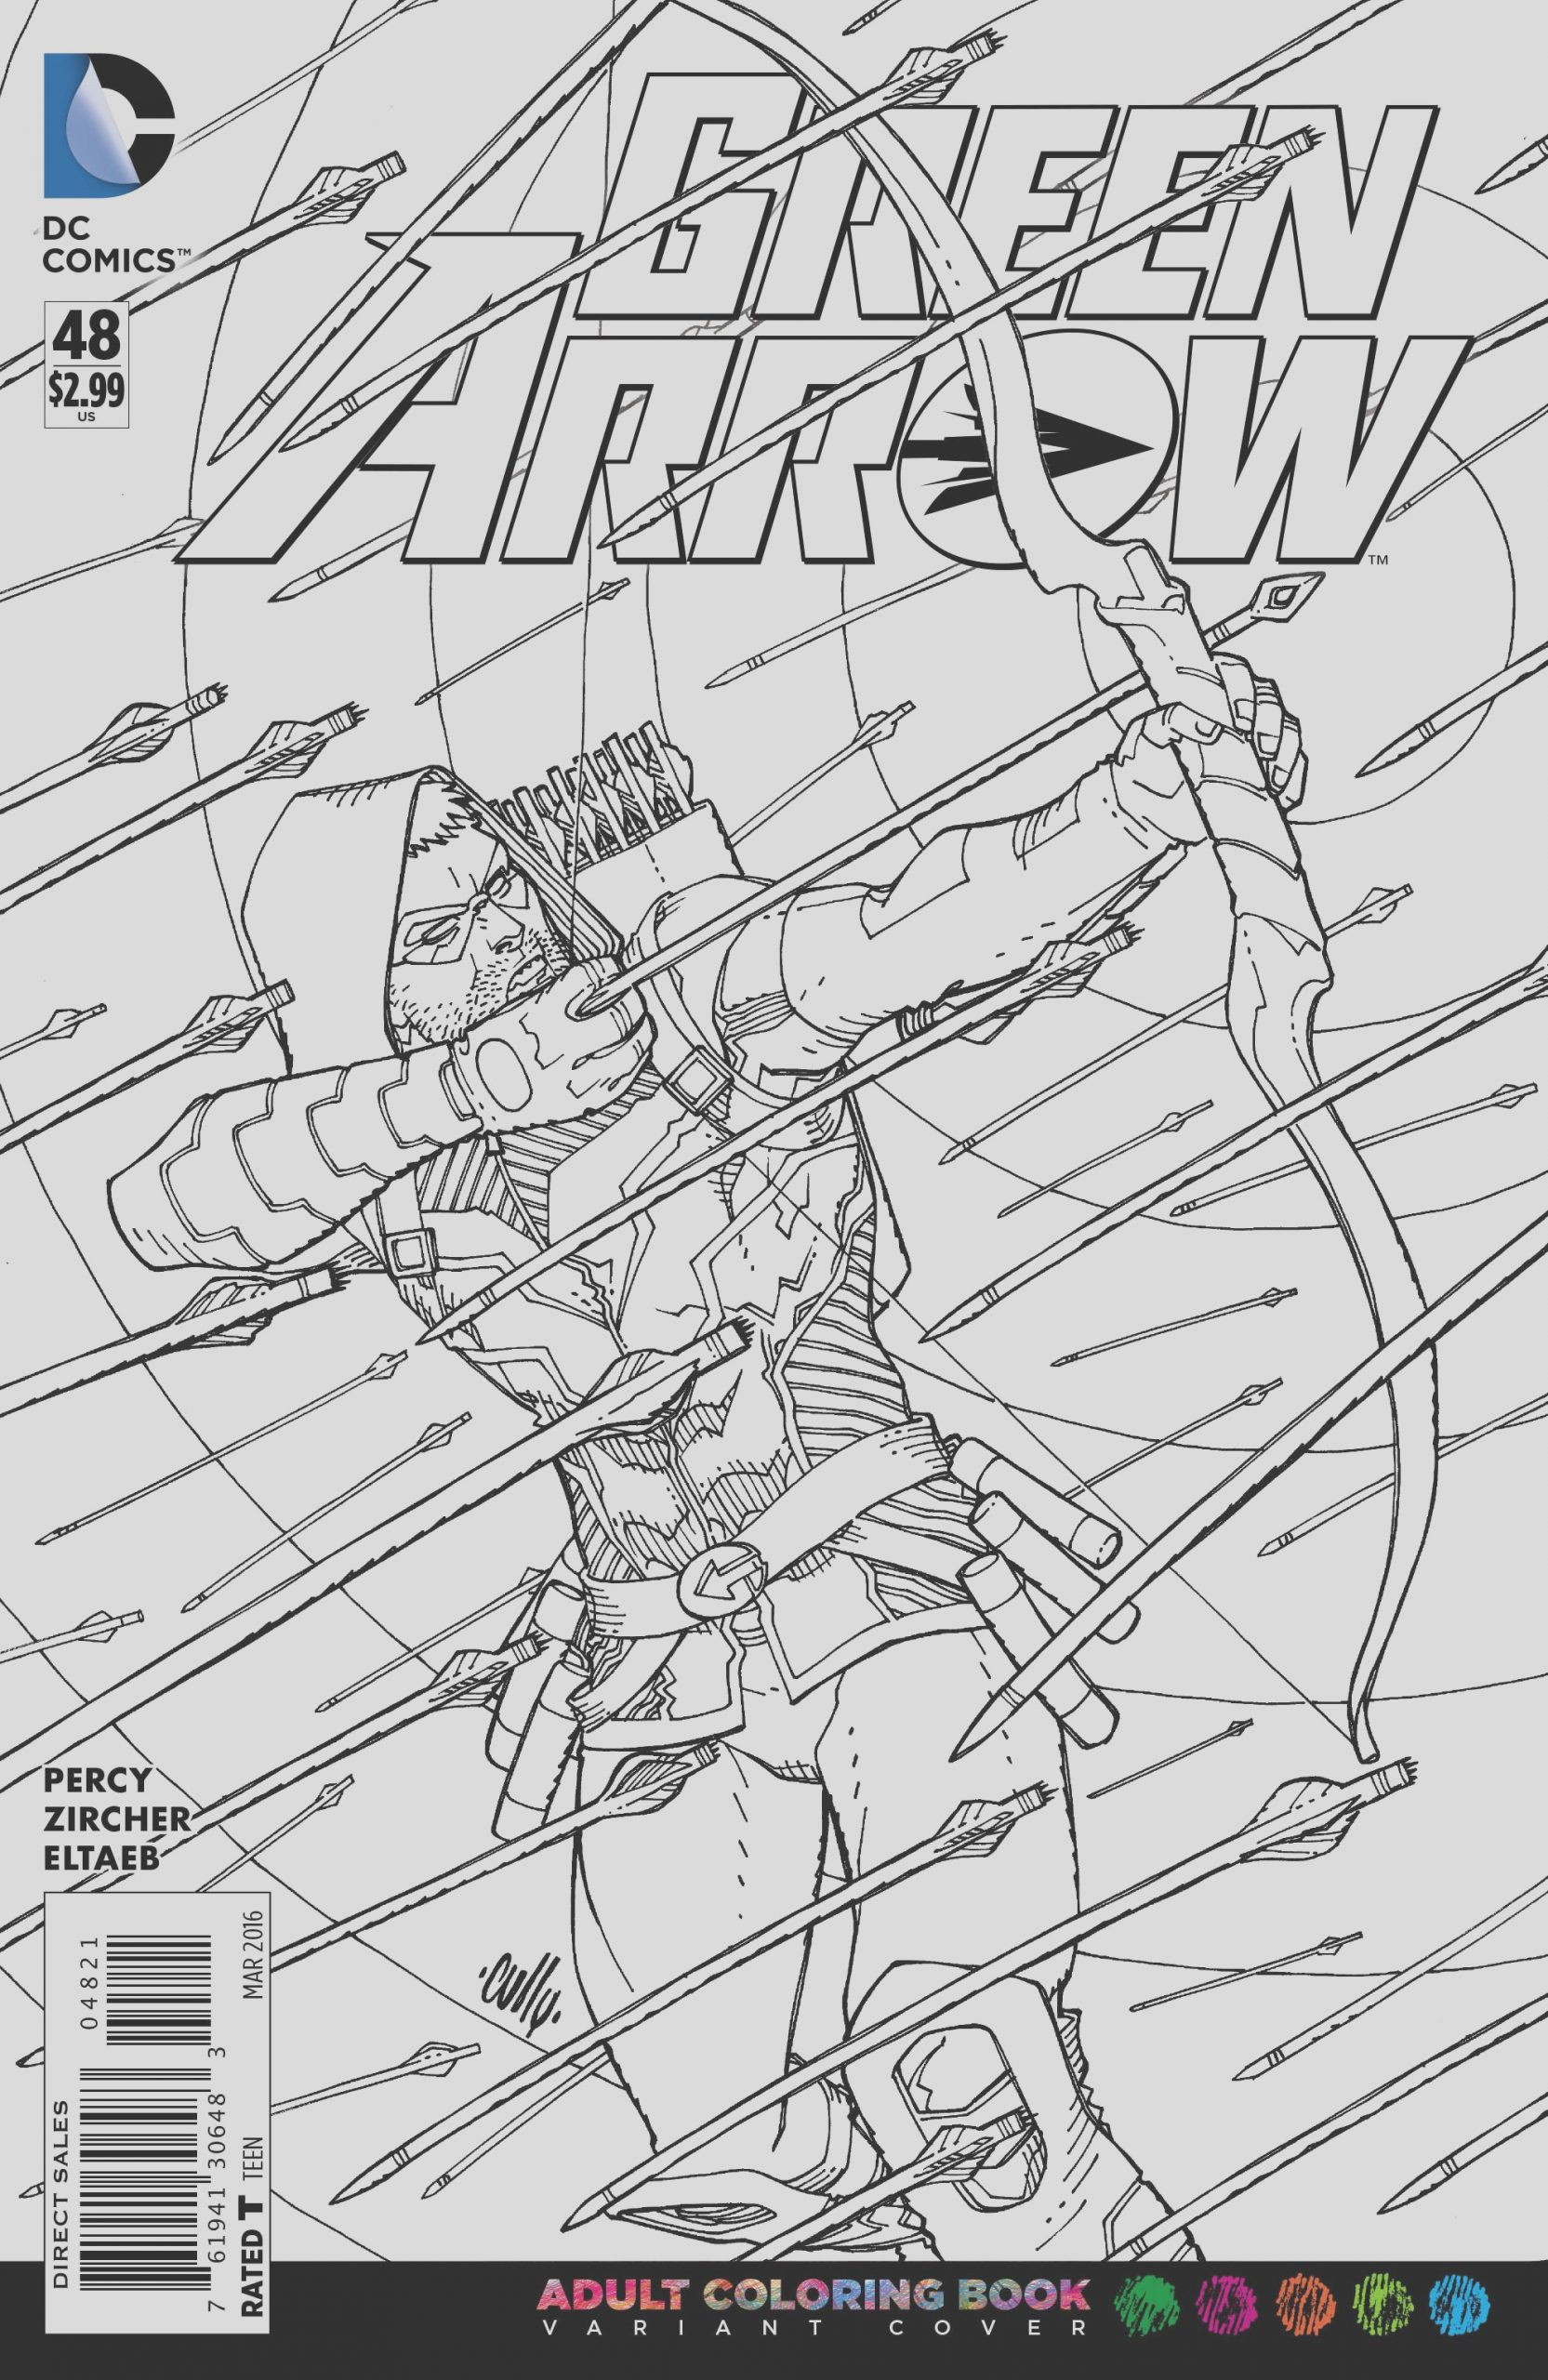 test your coloring with dc ics adult coloring book variant covers